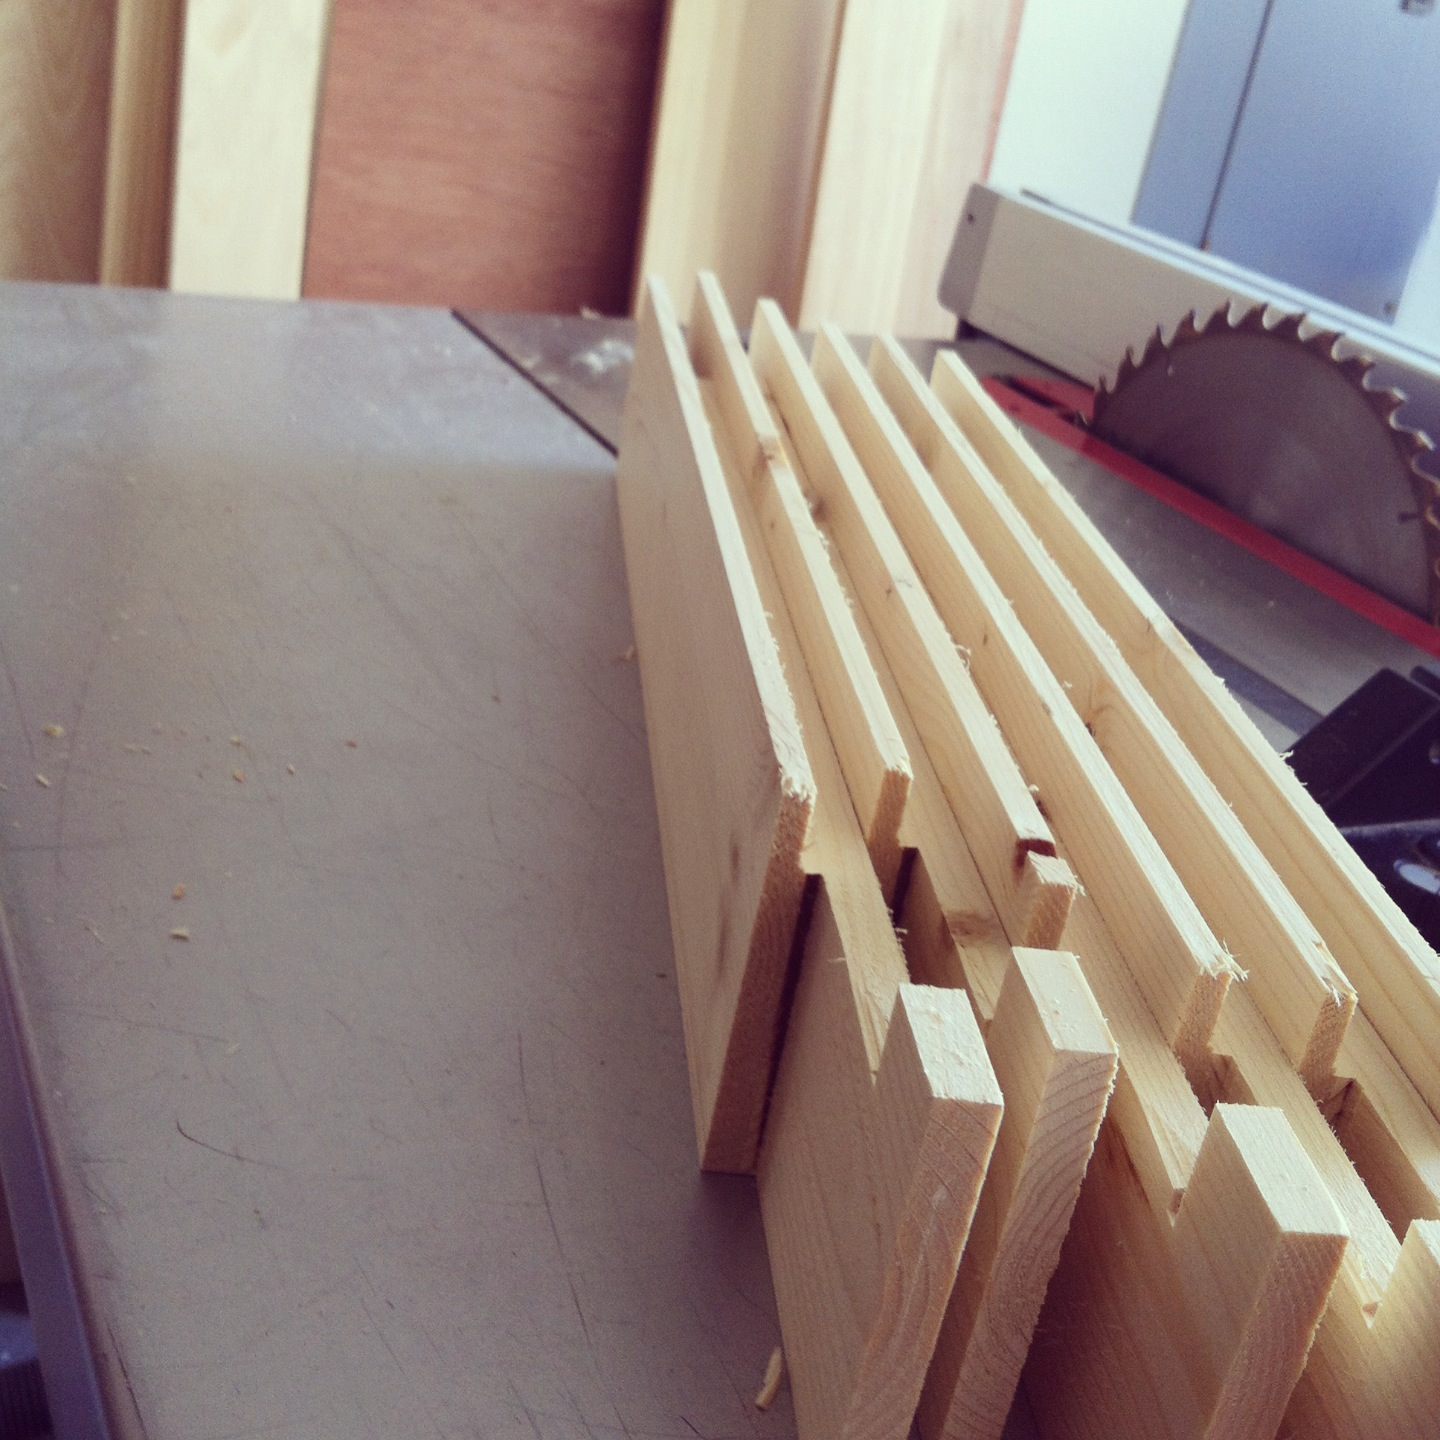 Freshly cut frame pieces, ready to be nailed and glued together.